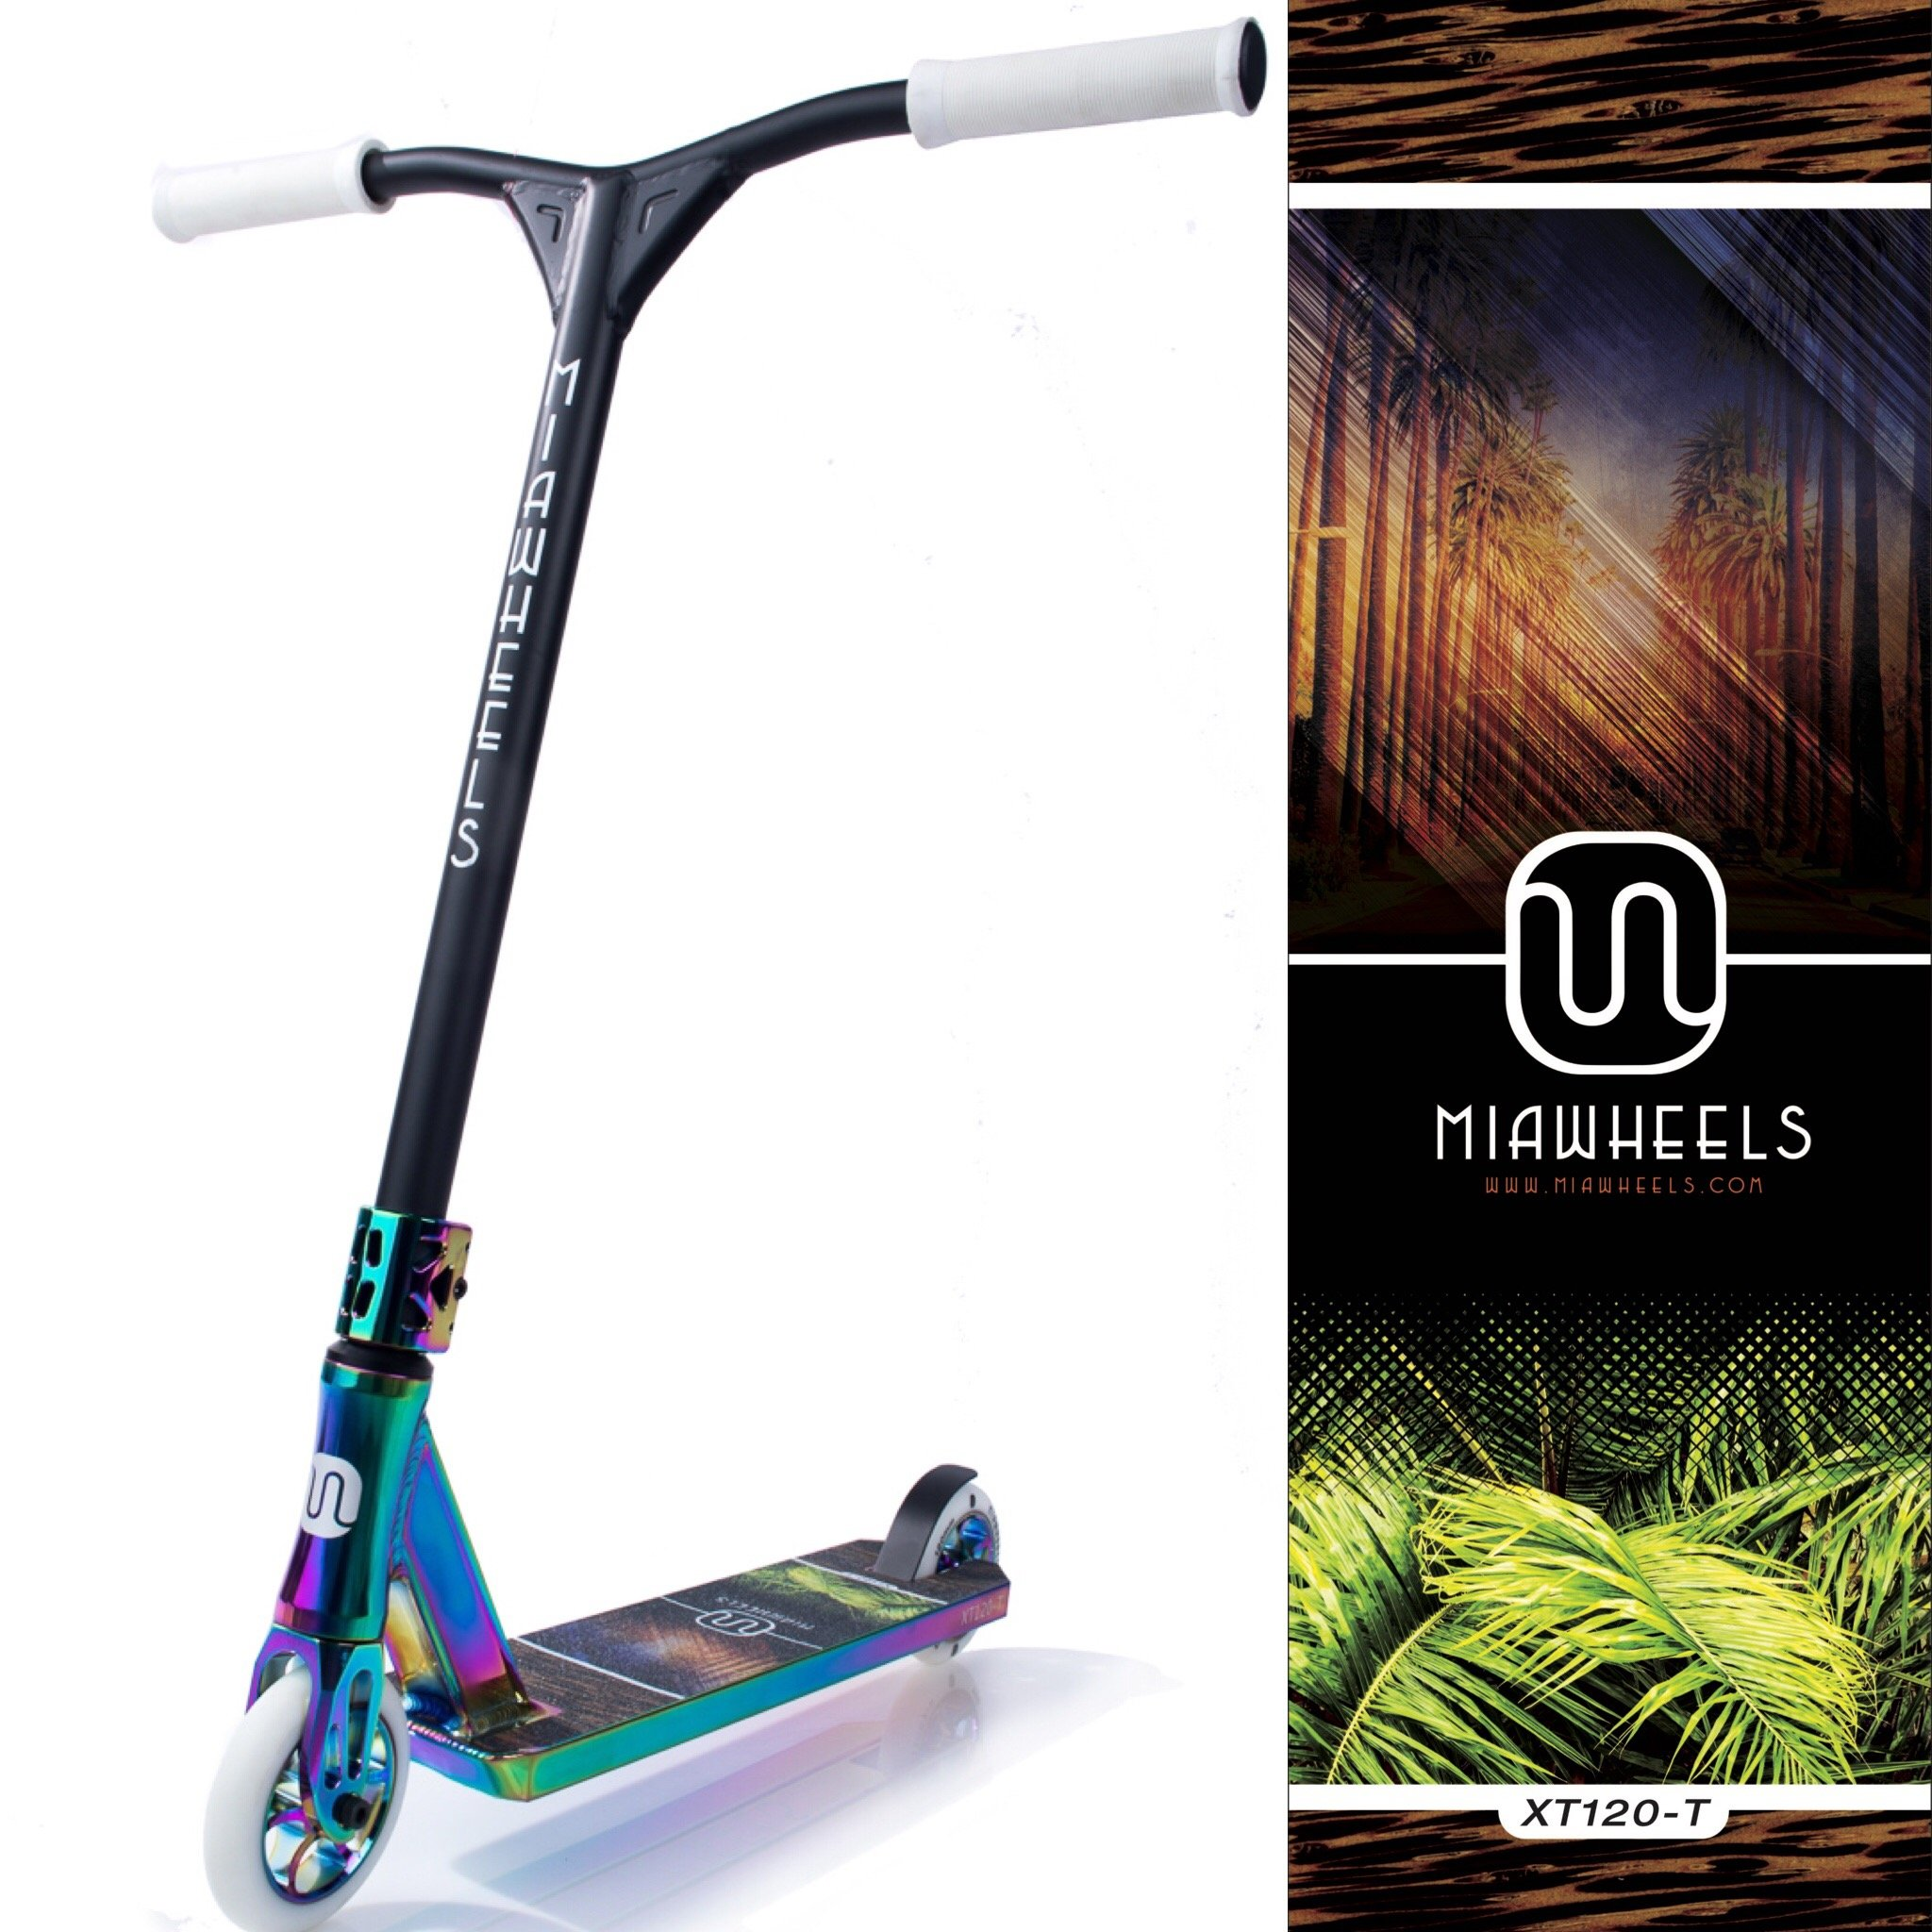 MIAWHEELS XT-120 (Tropical - White) Stunt Scooter- NEO-Chrome- 120MM Wheels- Made for Tricks- PRO Scooter